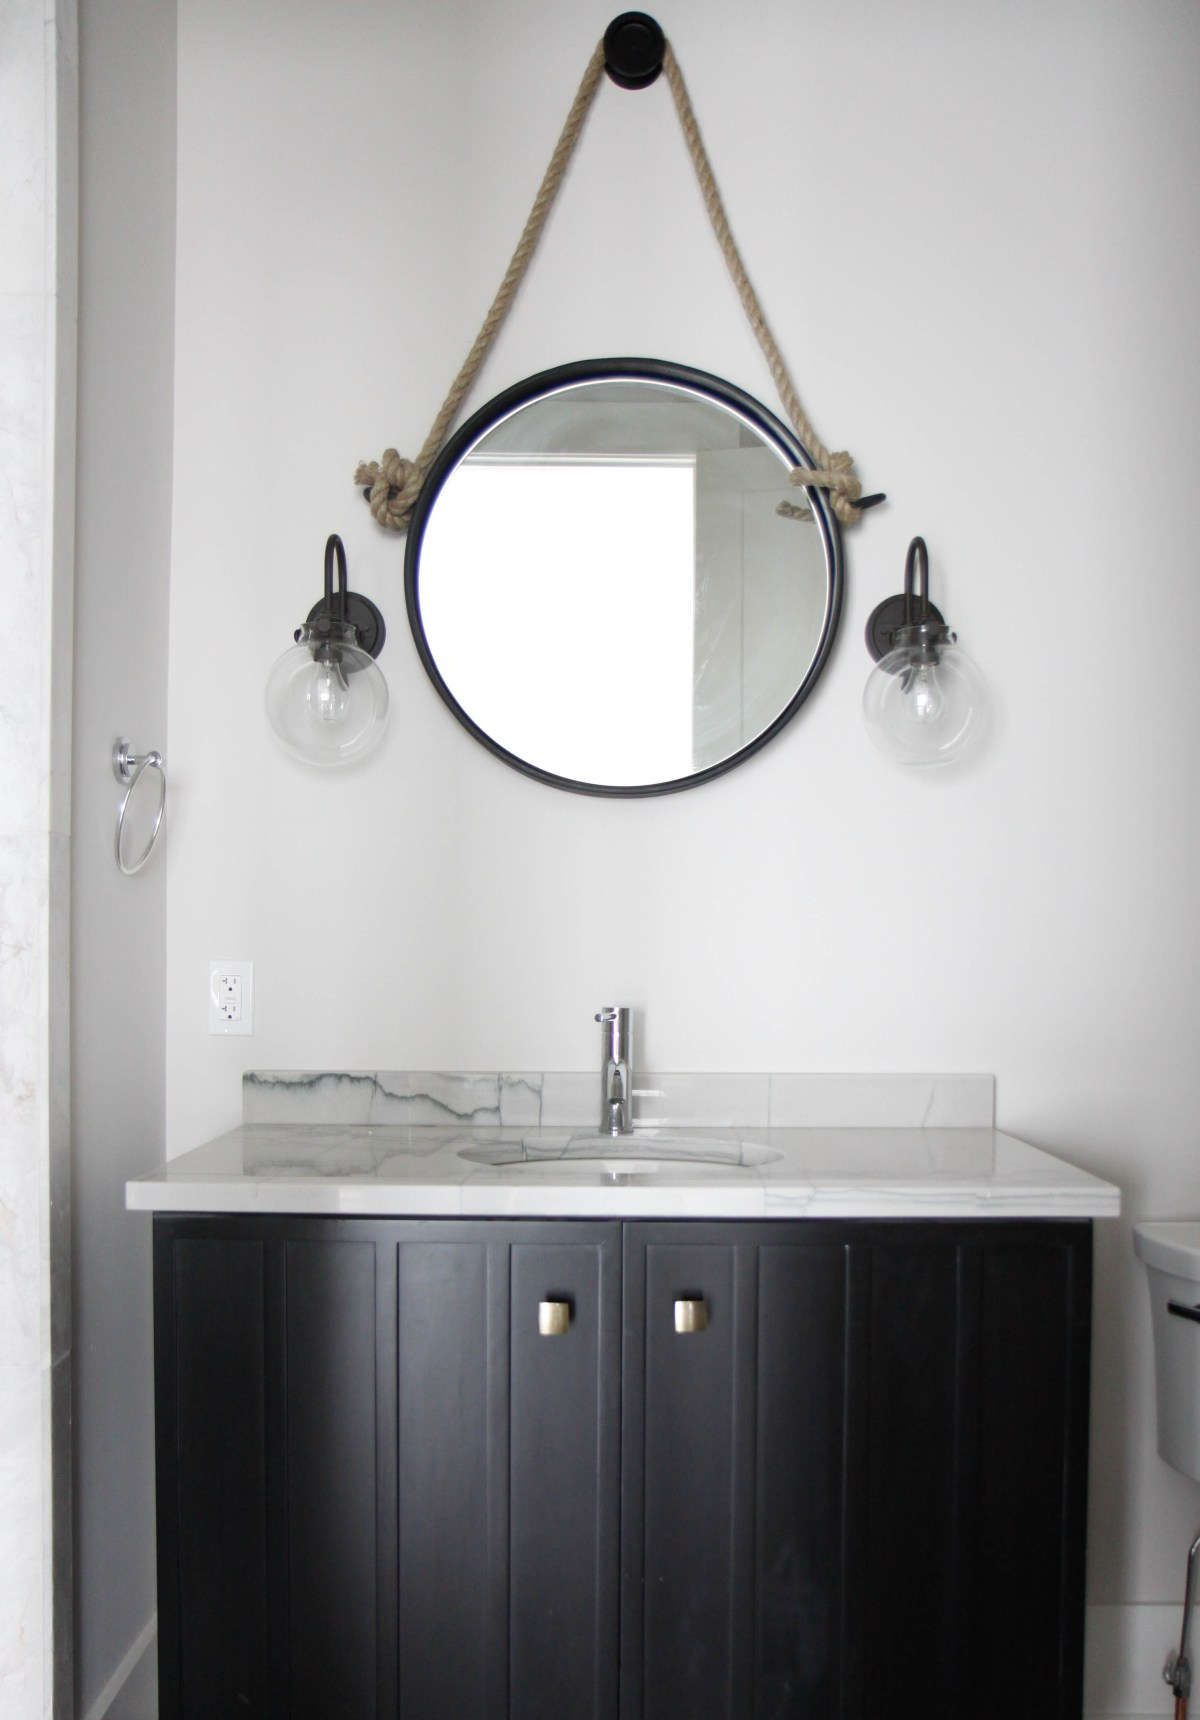 park and oak sconce round up